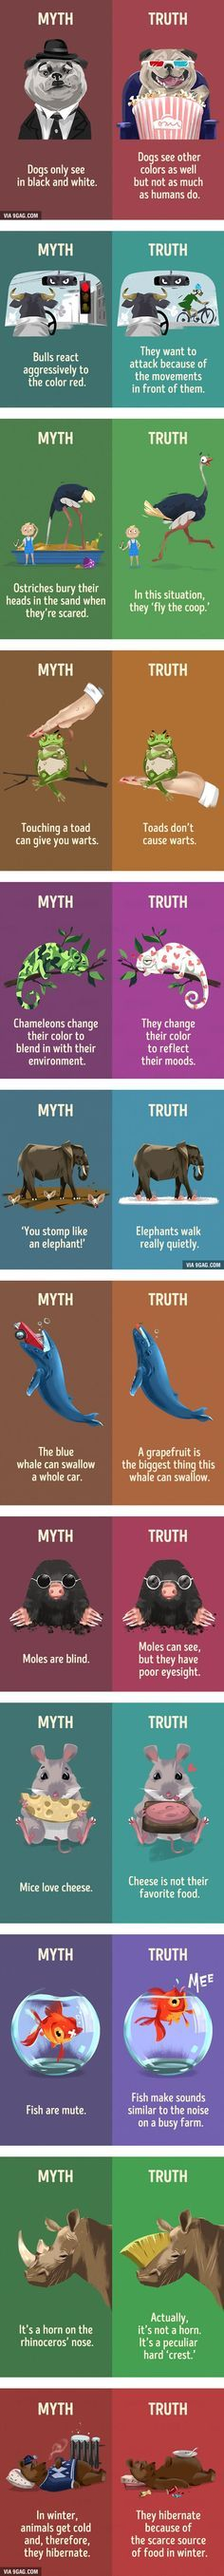 12 myths about animals that we still believe - 9GAG